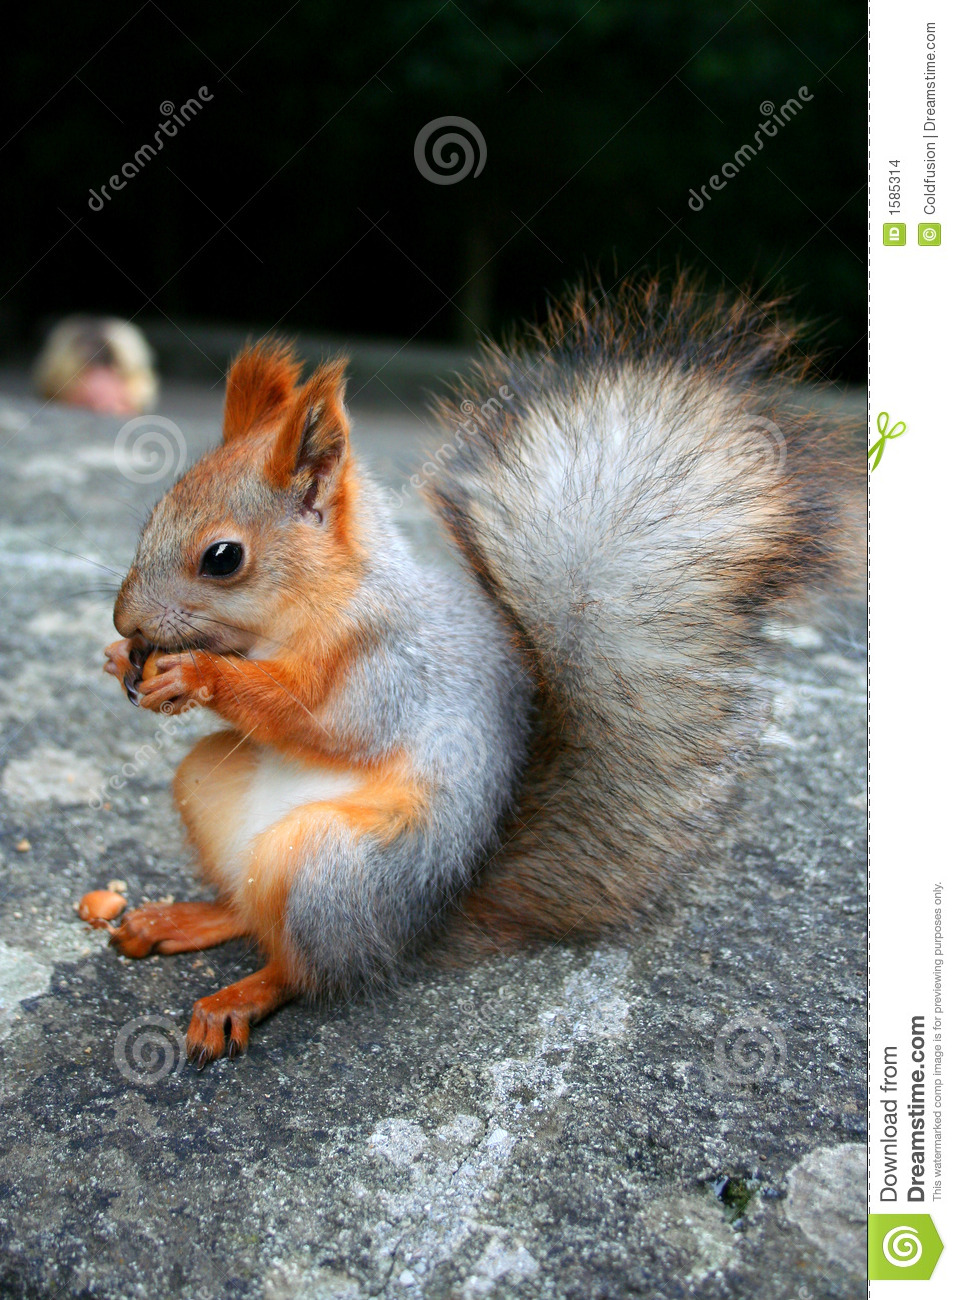 Squirrel nutcracker stock images image 1585314 - Nutcracker squirrel ...